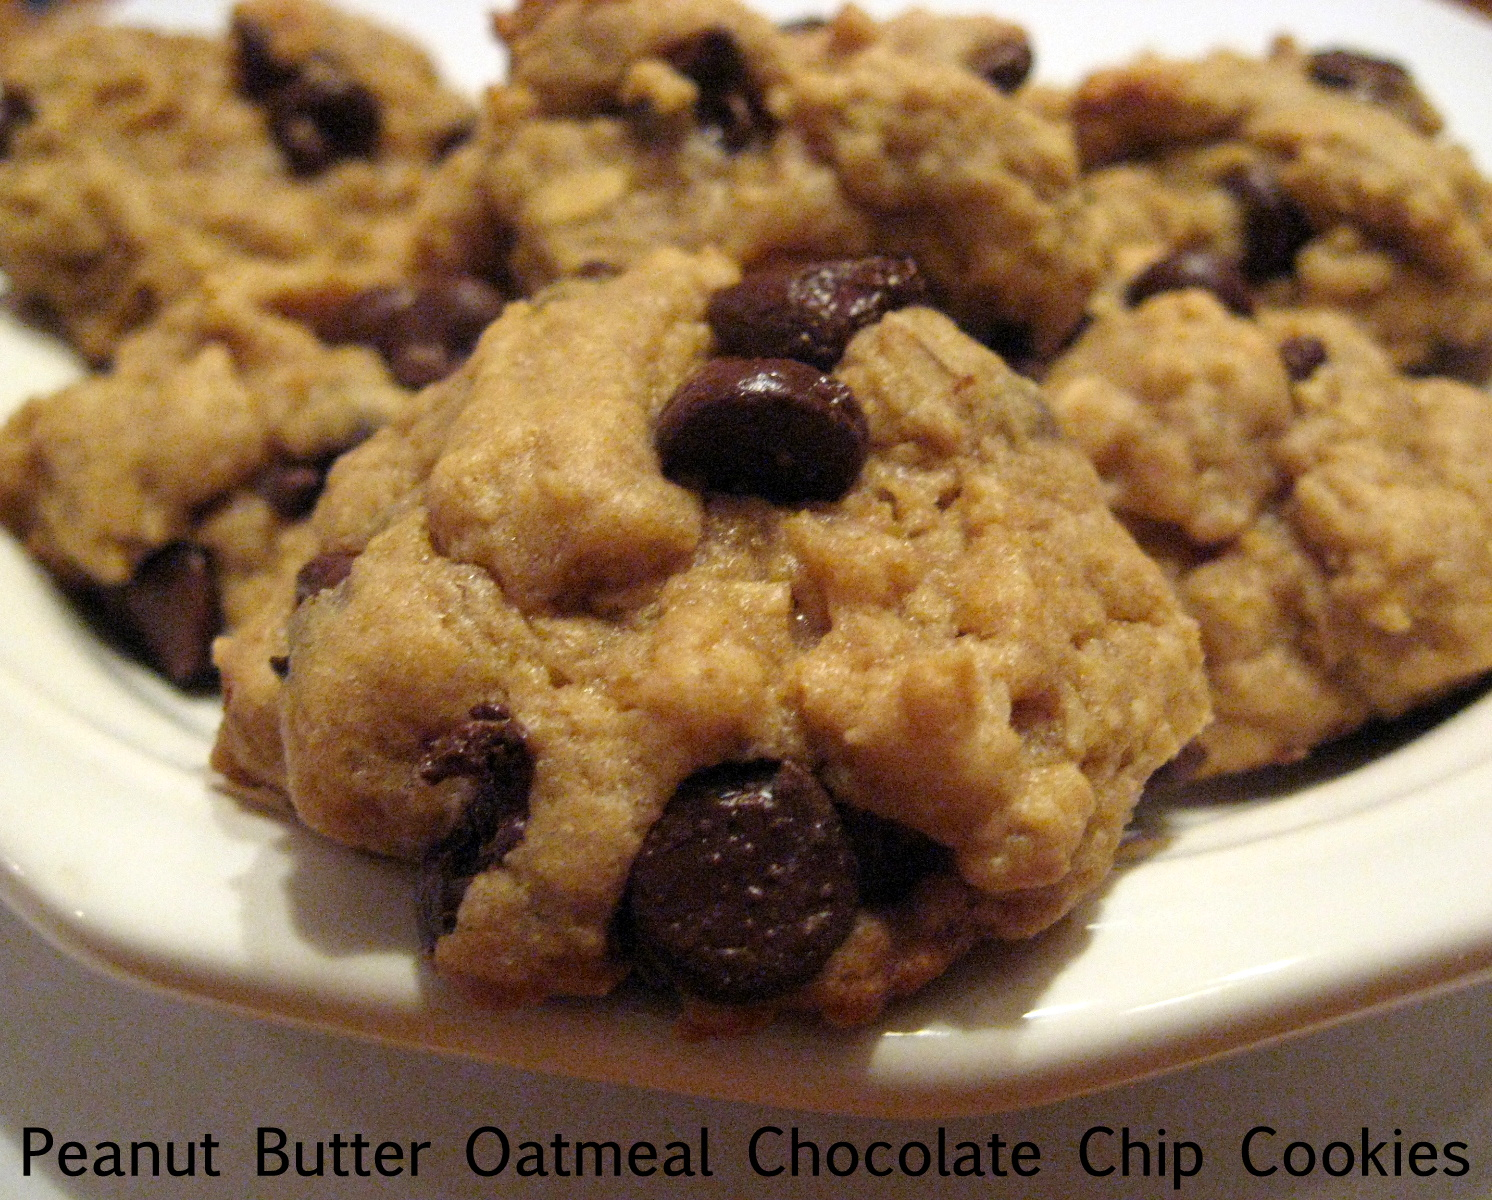 Humble Bumble: Peanut Butter Oatmeal Chocolate Chip Cookies